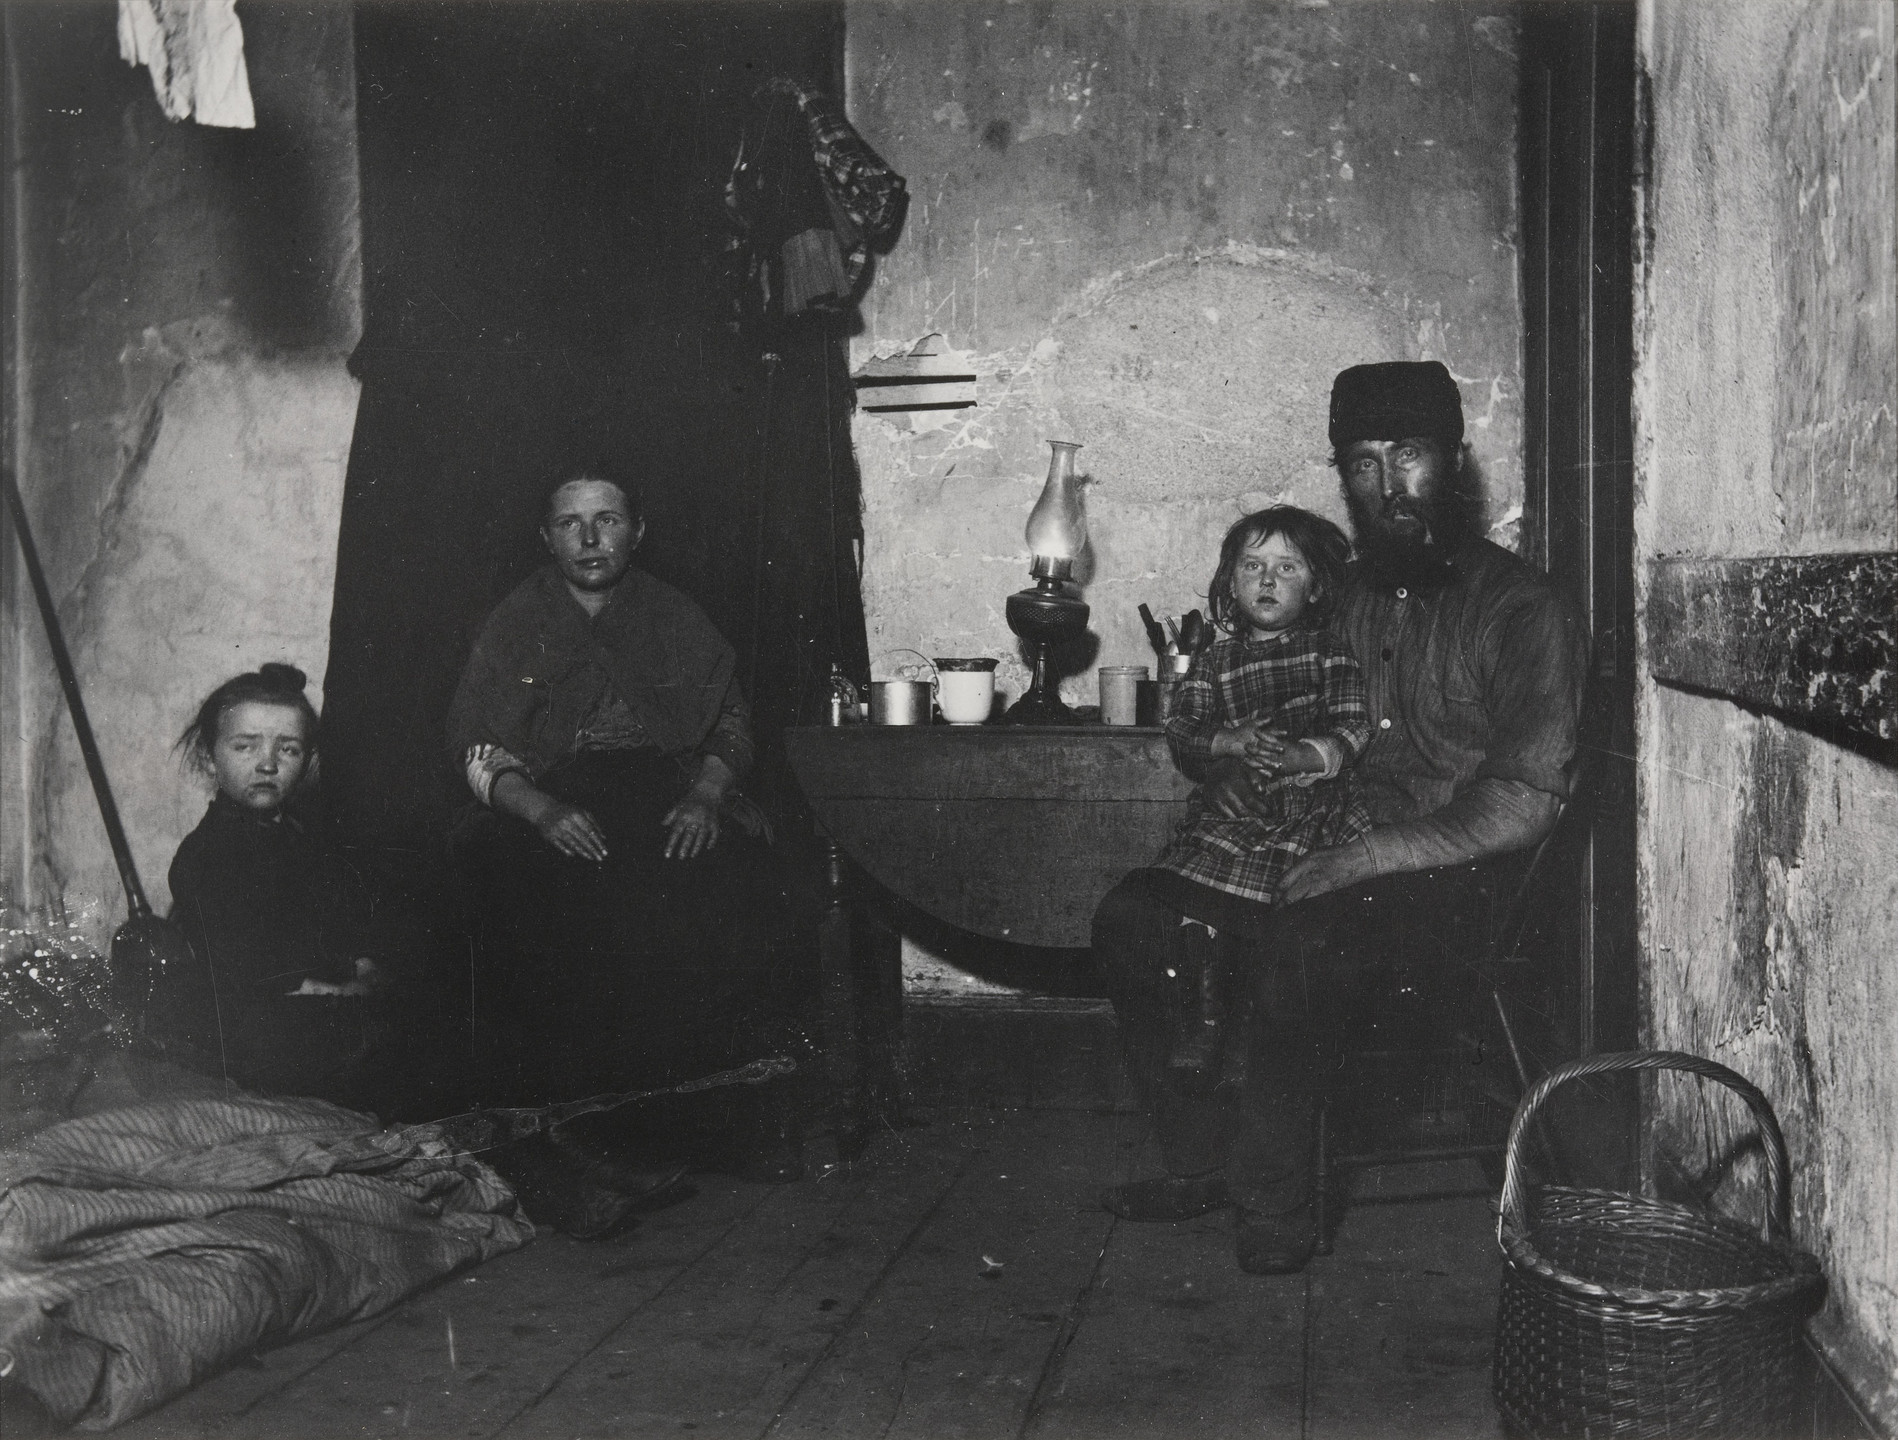 Jacob August Riis. In Poverty Gap, West 28th Street: An English Coal-heaver's Home. 1889